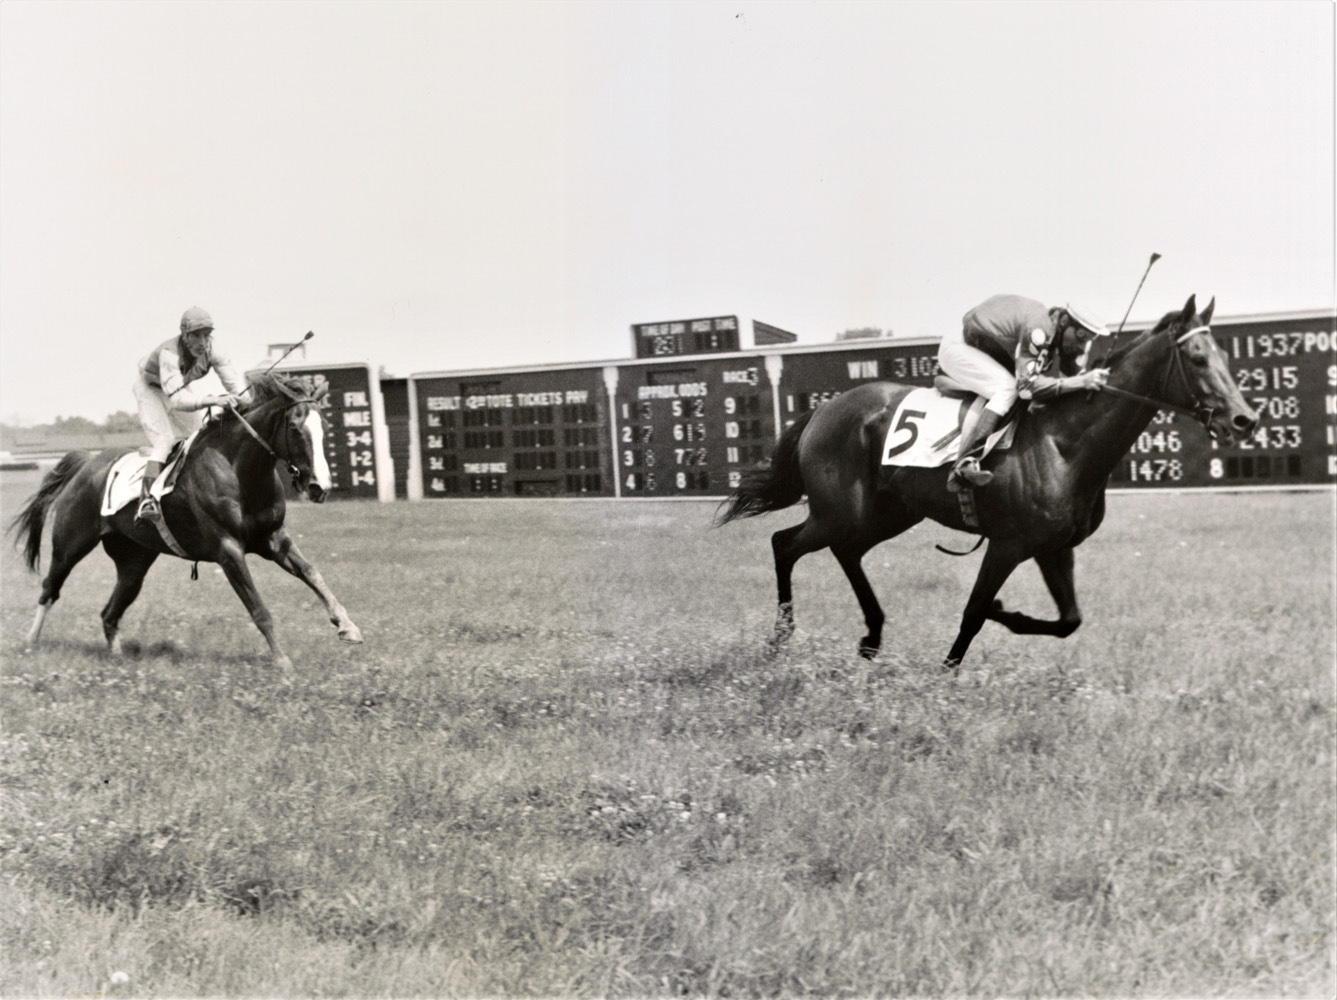 Joe Aitcheson and Tuscalee race to the finish in the 1968 Georgetown Steeplechase Handicap at Delaware Park (Keeneland Library Thoroughbred Times Collection)